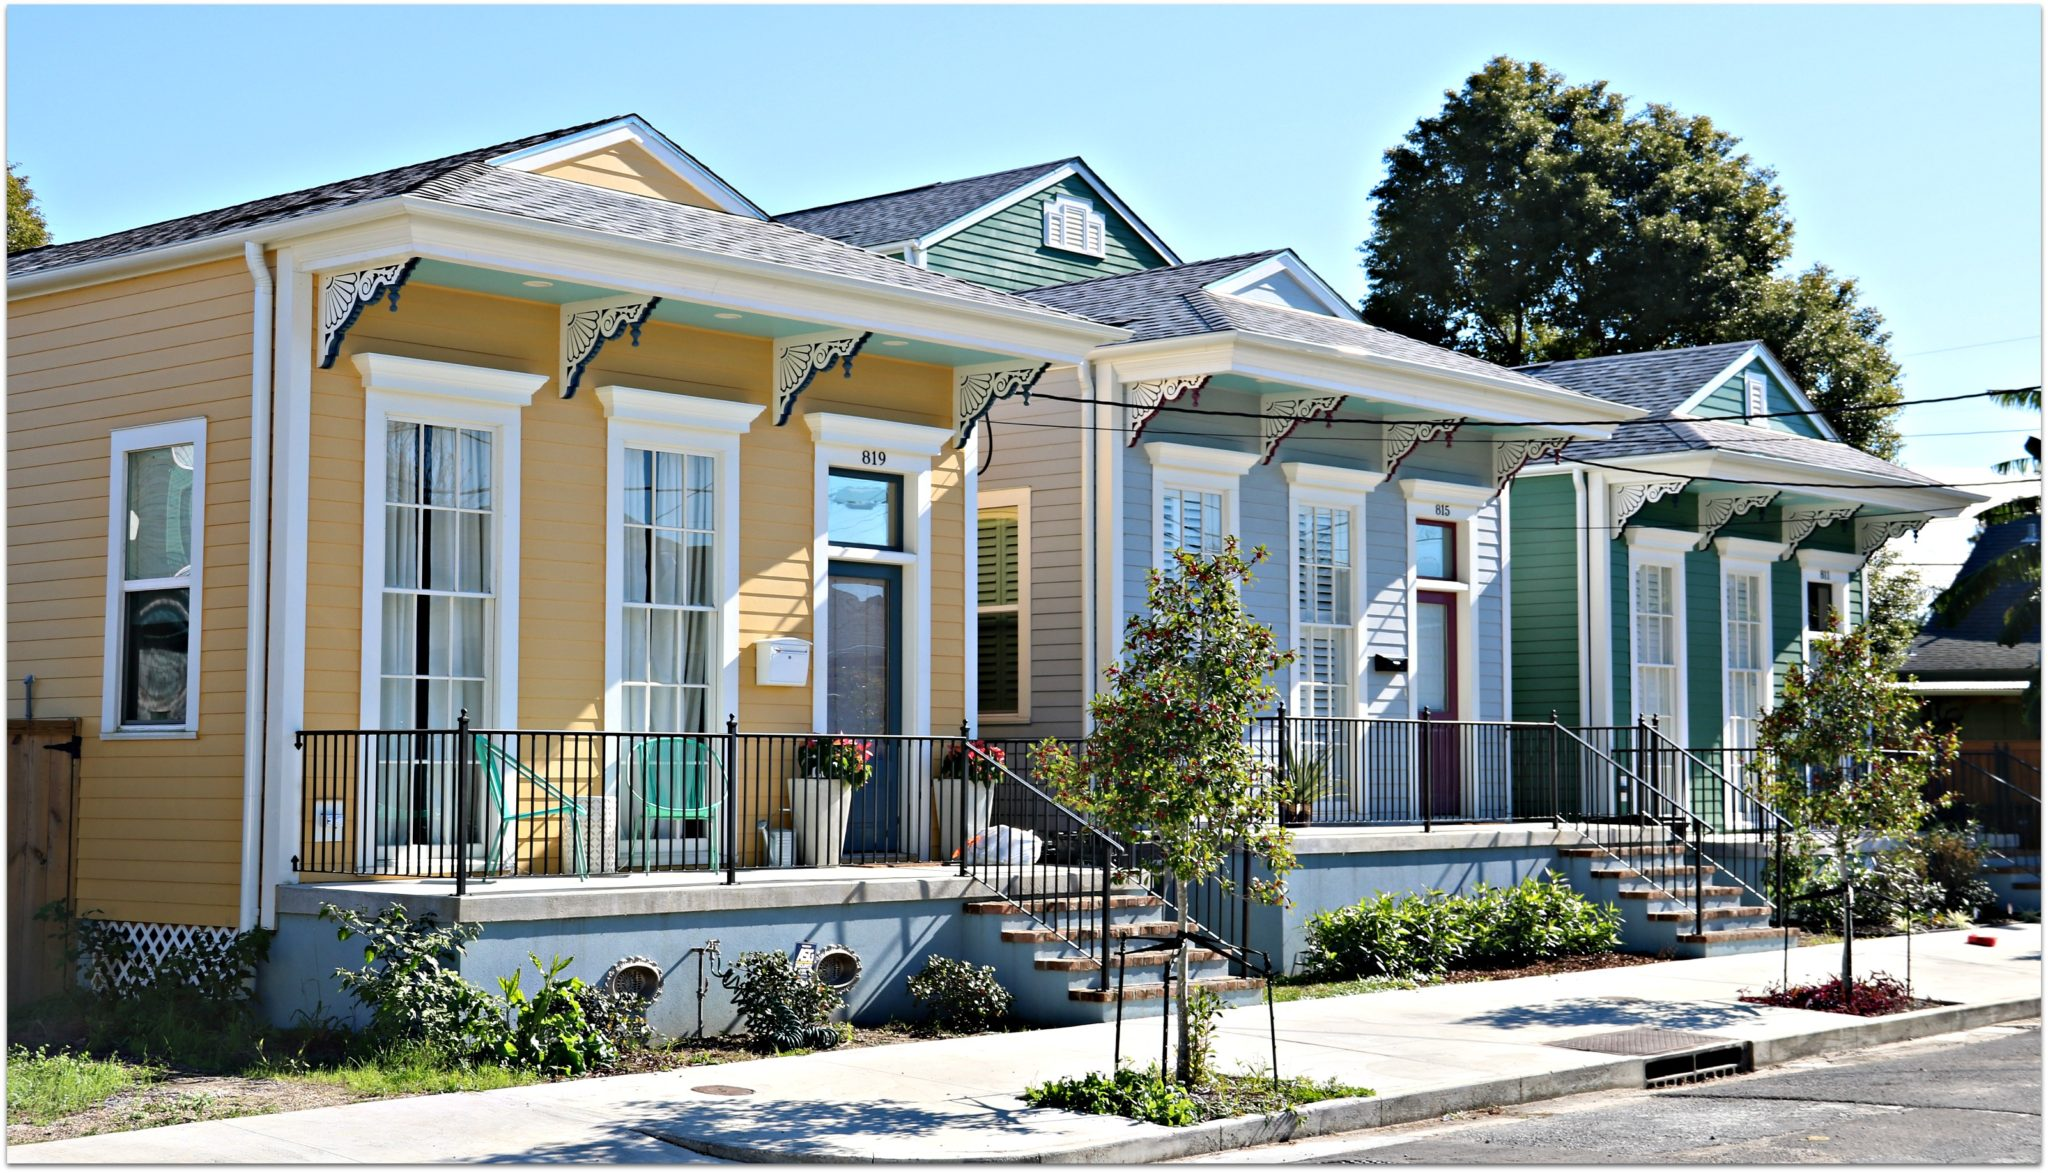 Historic New Homes in the Bywater